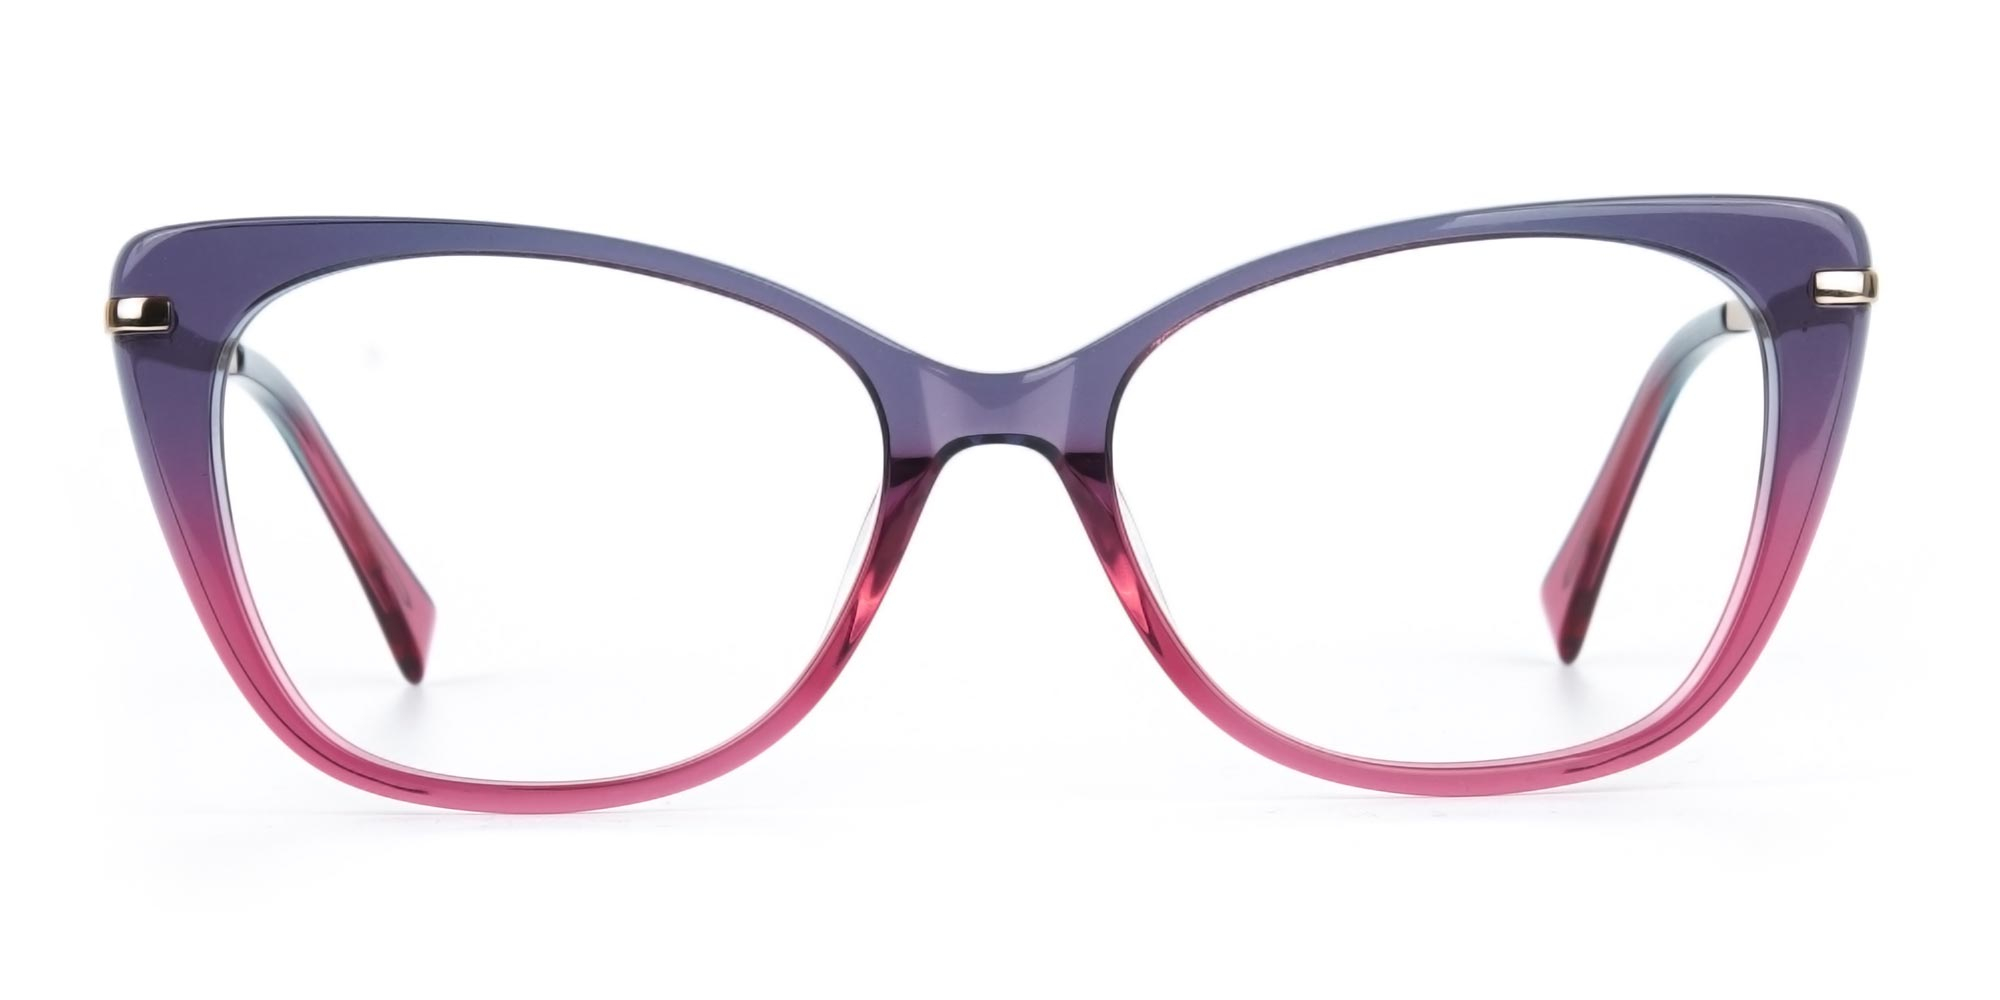 Dusty Purple and Magenta Eyeglasses for diamond face shape